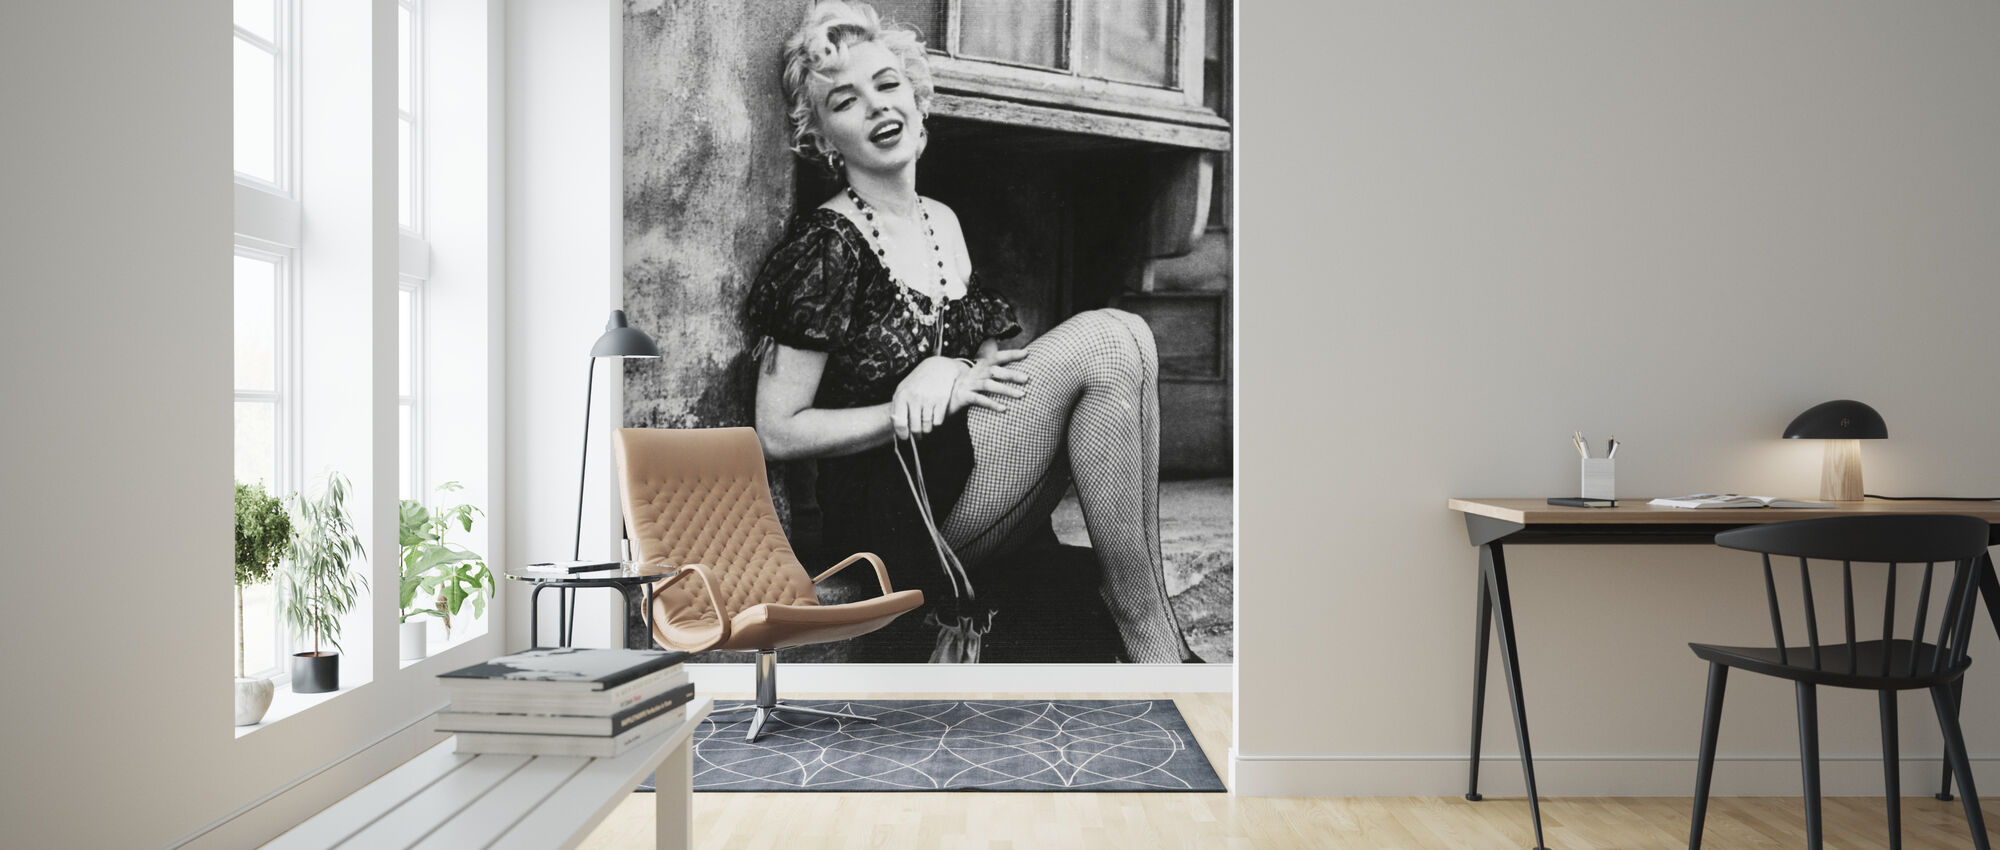 Marilyn Monroe In Bus Stop High Quality Wall Murals With Free Us